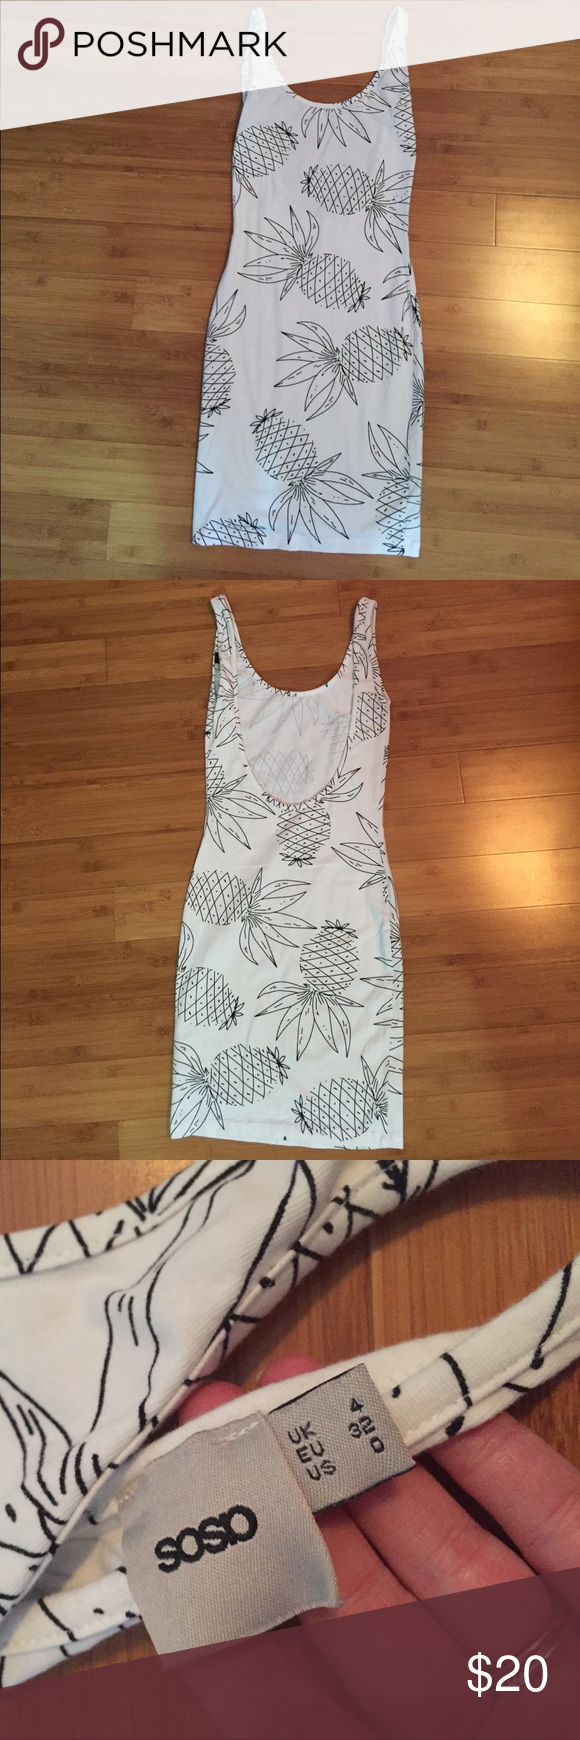 "ASOS Pineapple Bodycon Dress Adorable pineapple print dress with scoop back. I'm 5'1"" and it hits mid thigh (not too short) has minor stain (pictured). TTS (XS,0) Very flattering and perfect with bright accessories! I am accepting reasonable offers, no trades. ASOS Dresses Mini"